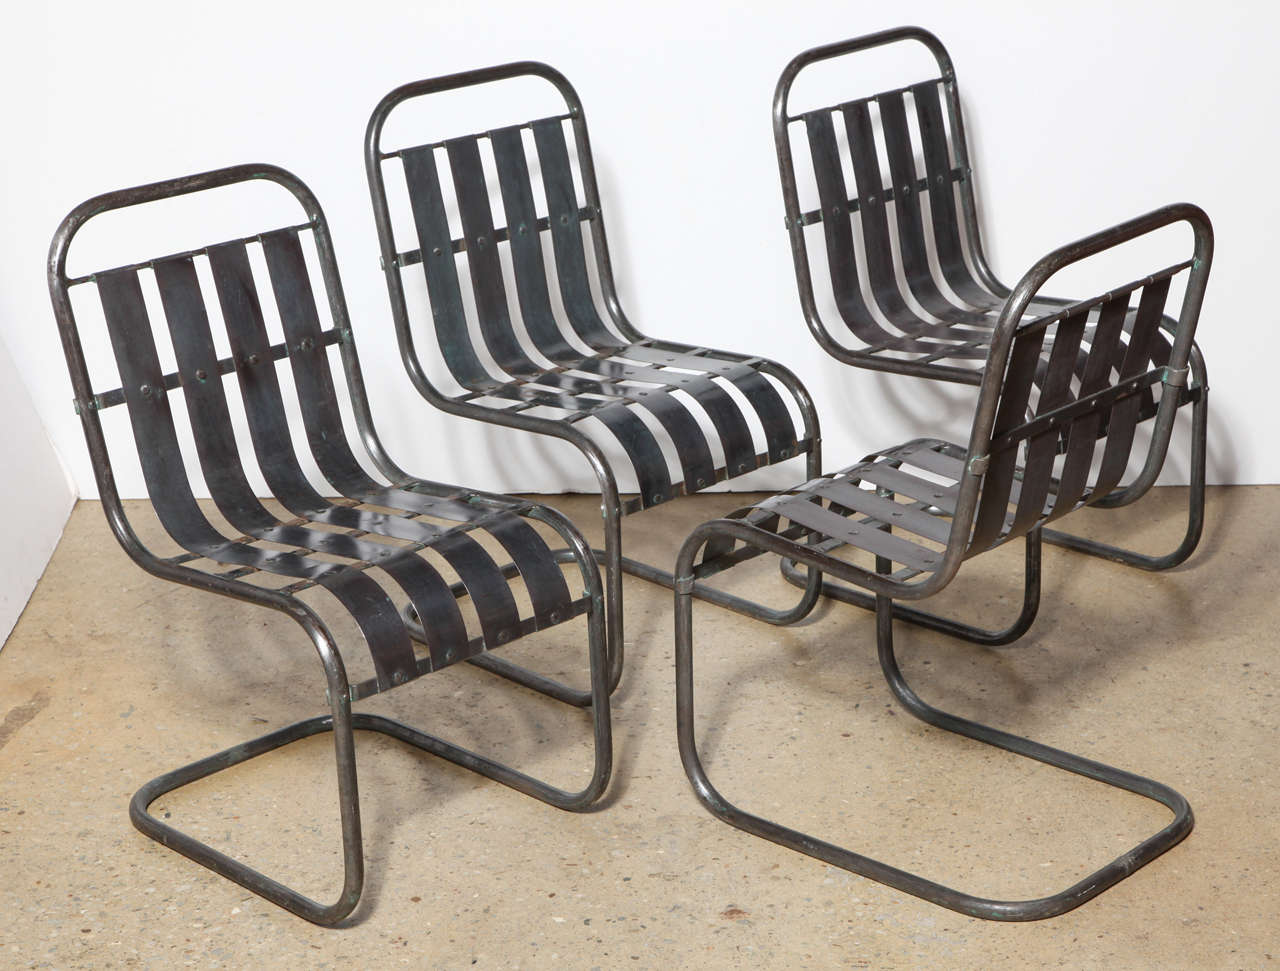 Spring Chair Set Of Four Industrial Steel Spring Rocker Side Chairs Circa 1930